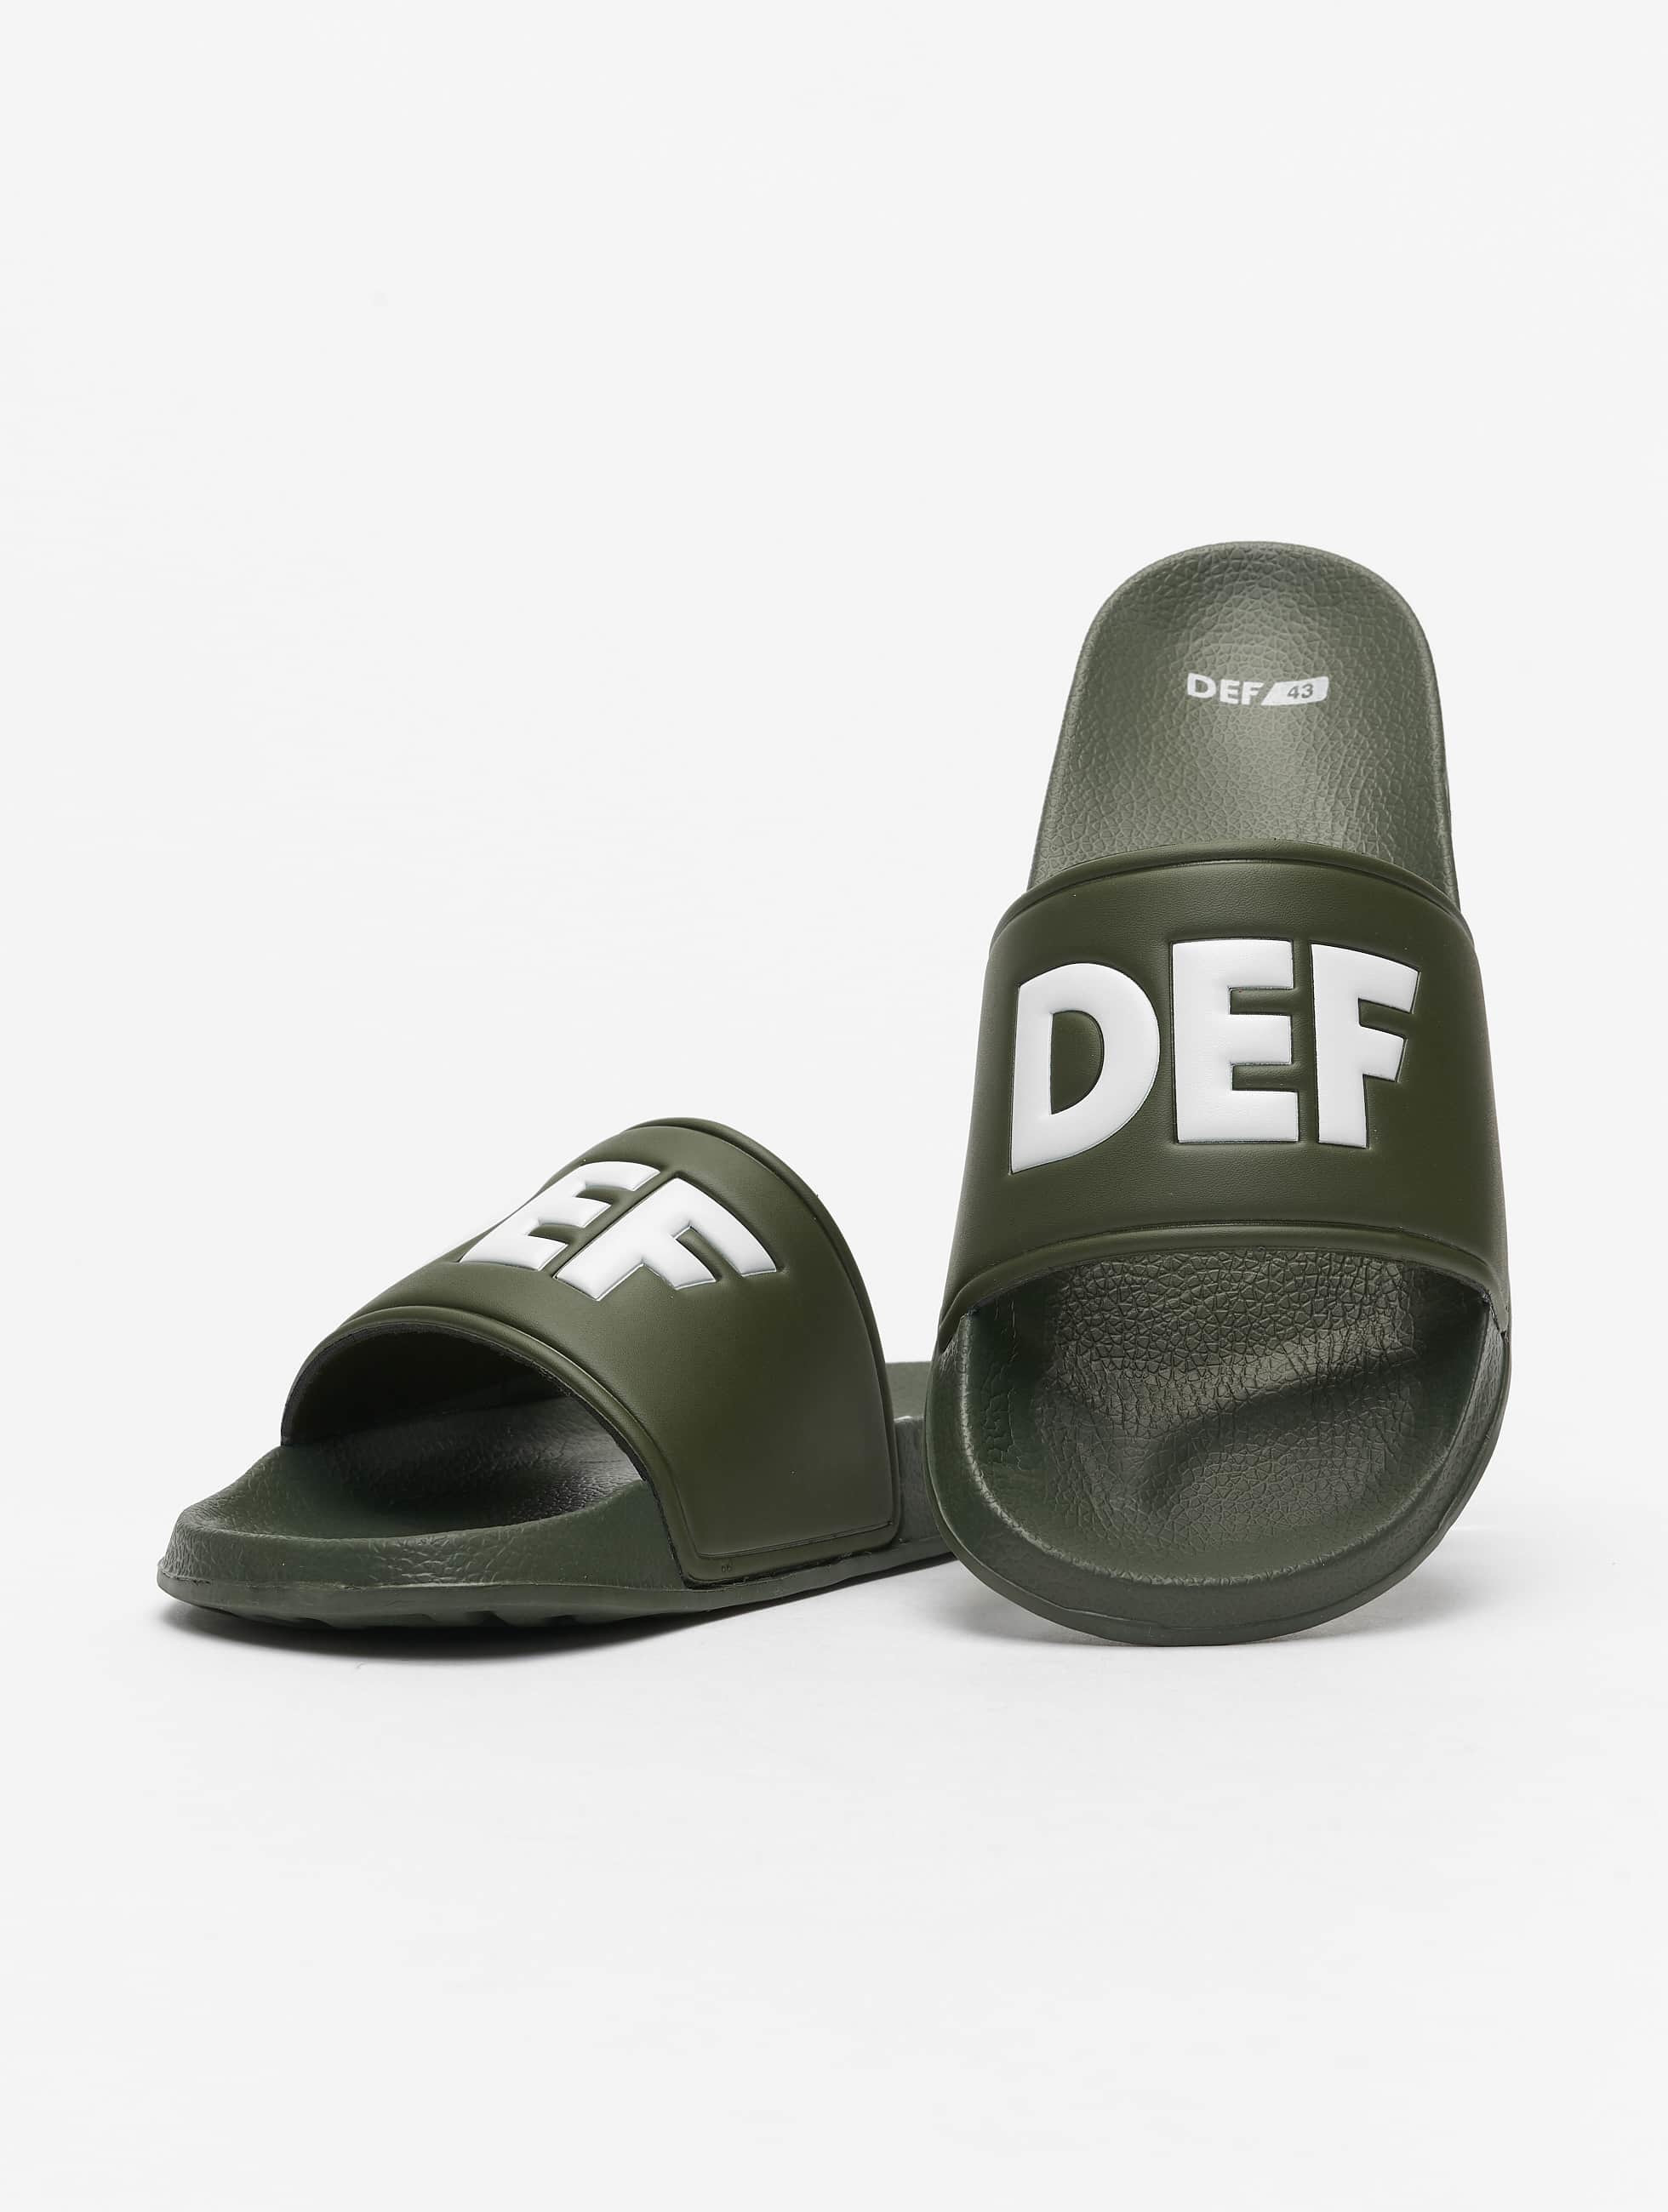 DEF / Sandals Defiletten in olive 46